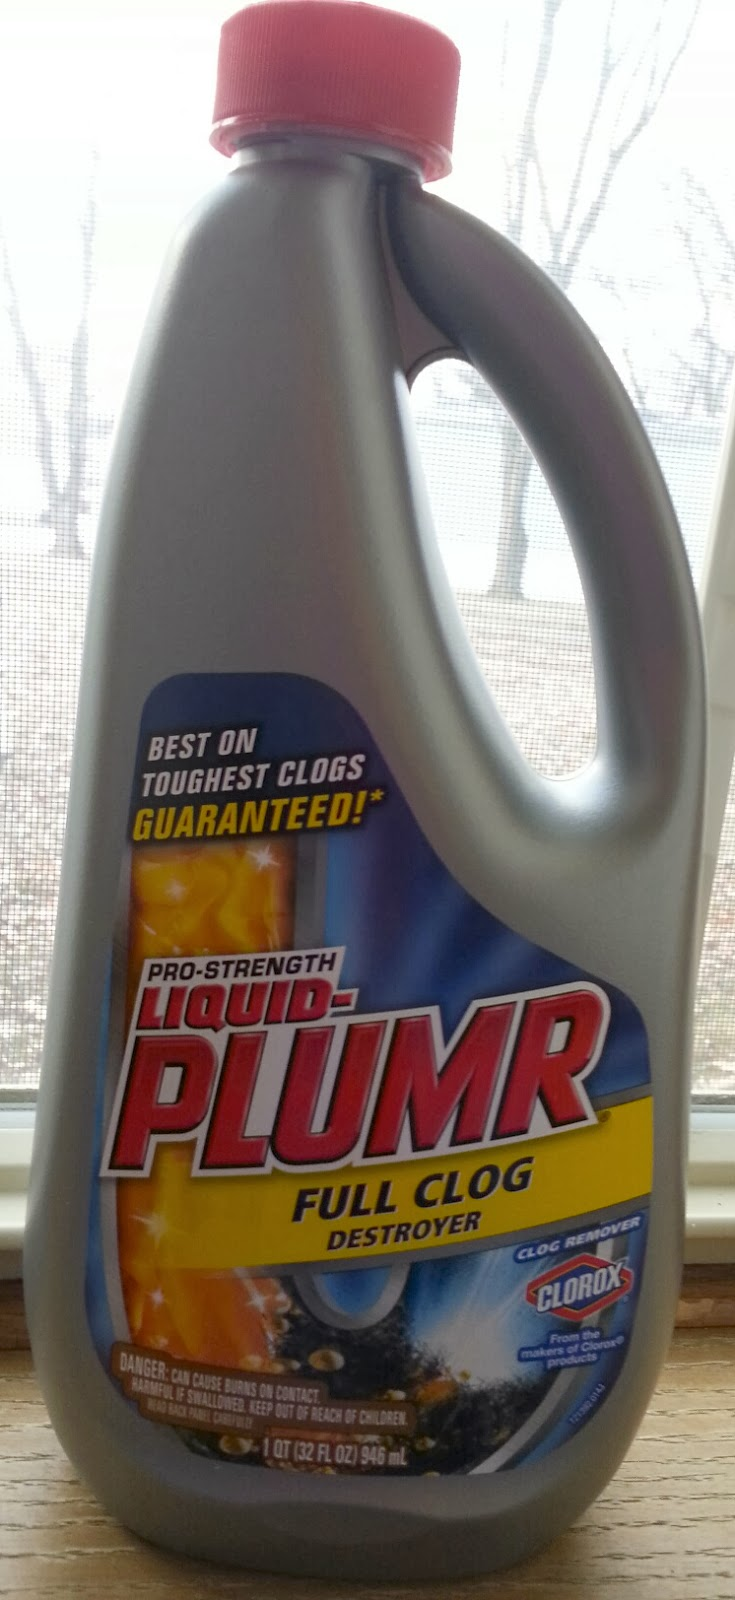 best liquid drain cleaner for kitchen sink kitchen sink draining slowly Liquid Plumr For Kitchen Sinks Zitzat 1 Gal 10 Minute Hair Clog Remover